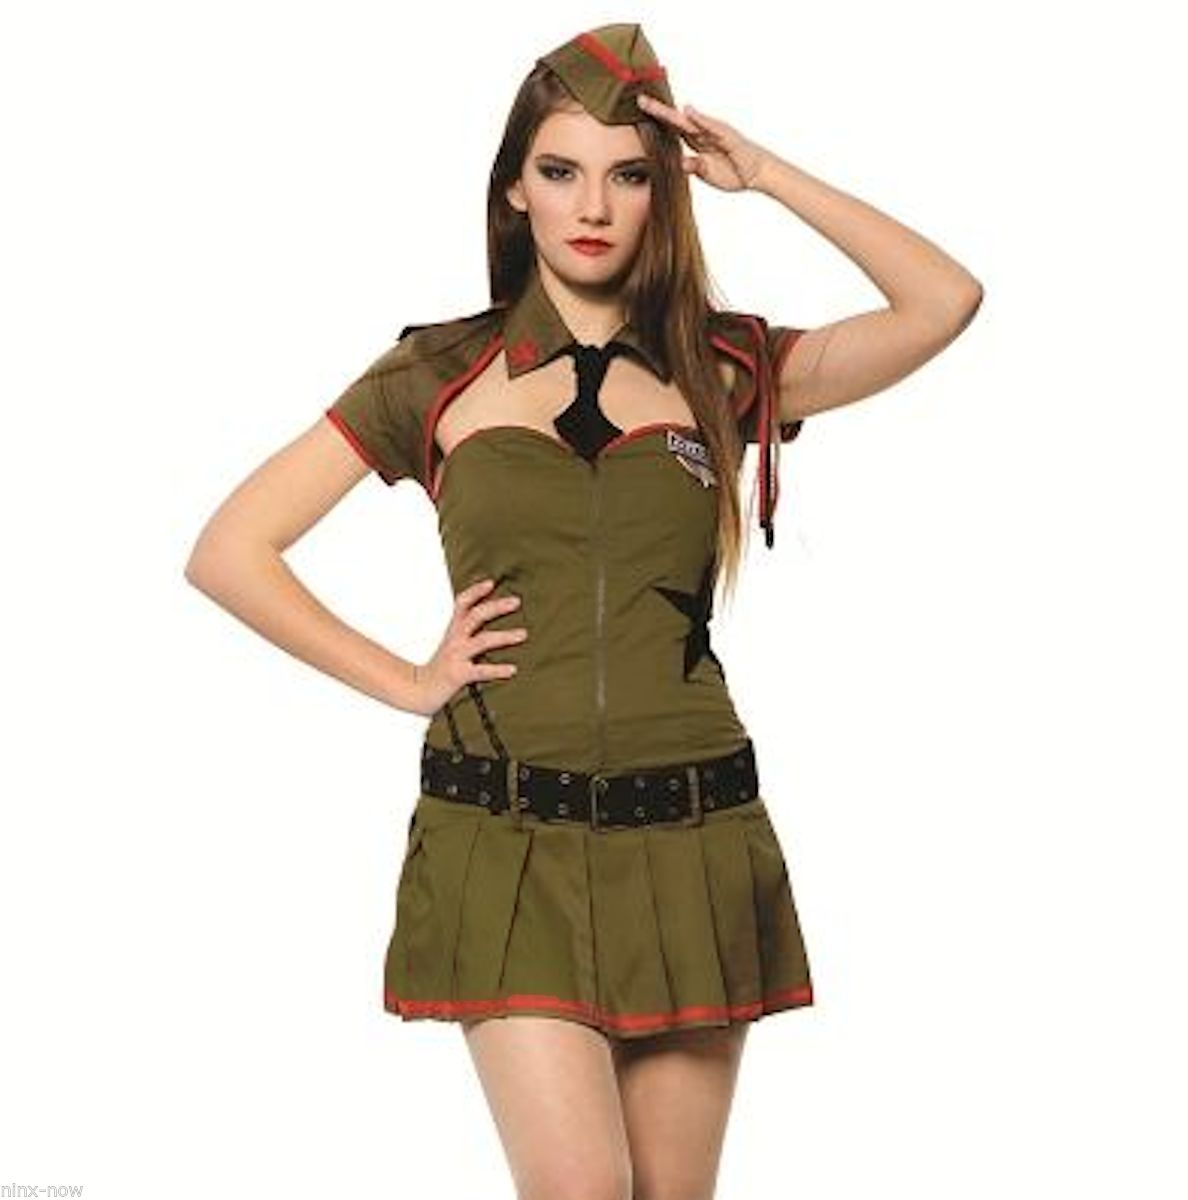 b9d47e19a30d4 Sexy Army Private Pin up Girl Military Uniform Women's Costume 4 piece –  Ninx Costumes